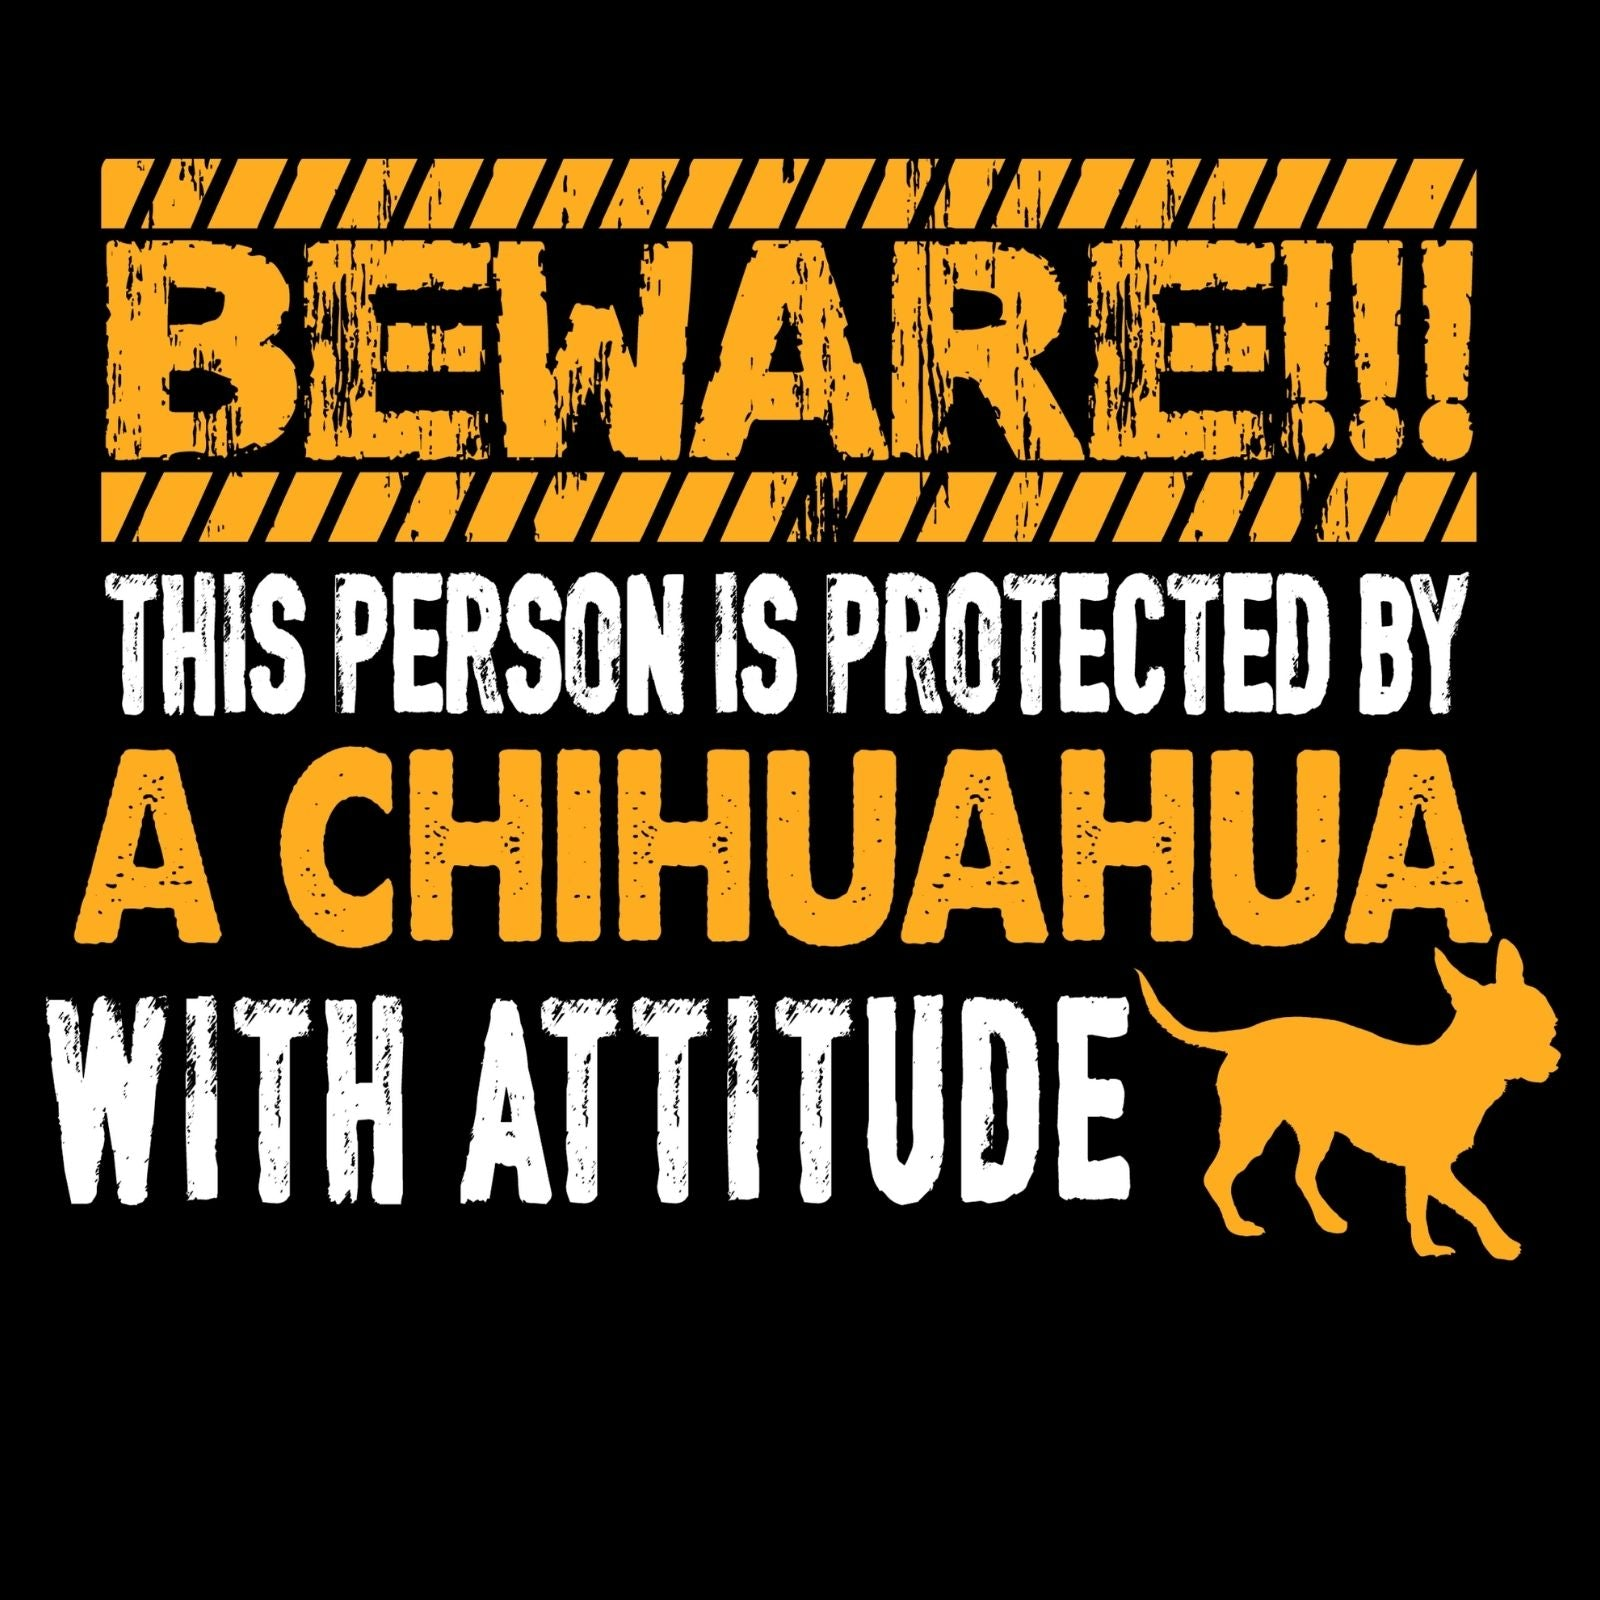 BEWARE This Person Is Protected By A Chihuahua With Attitude - Bastard Graphics